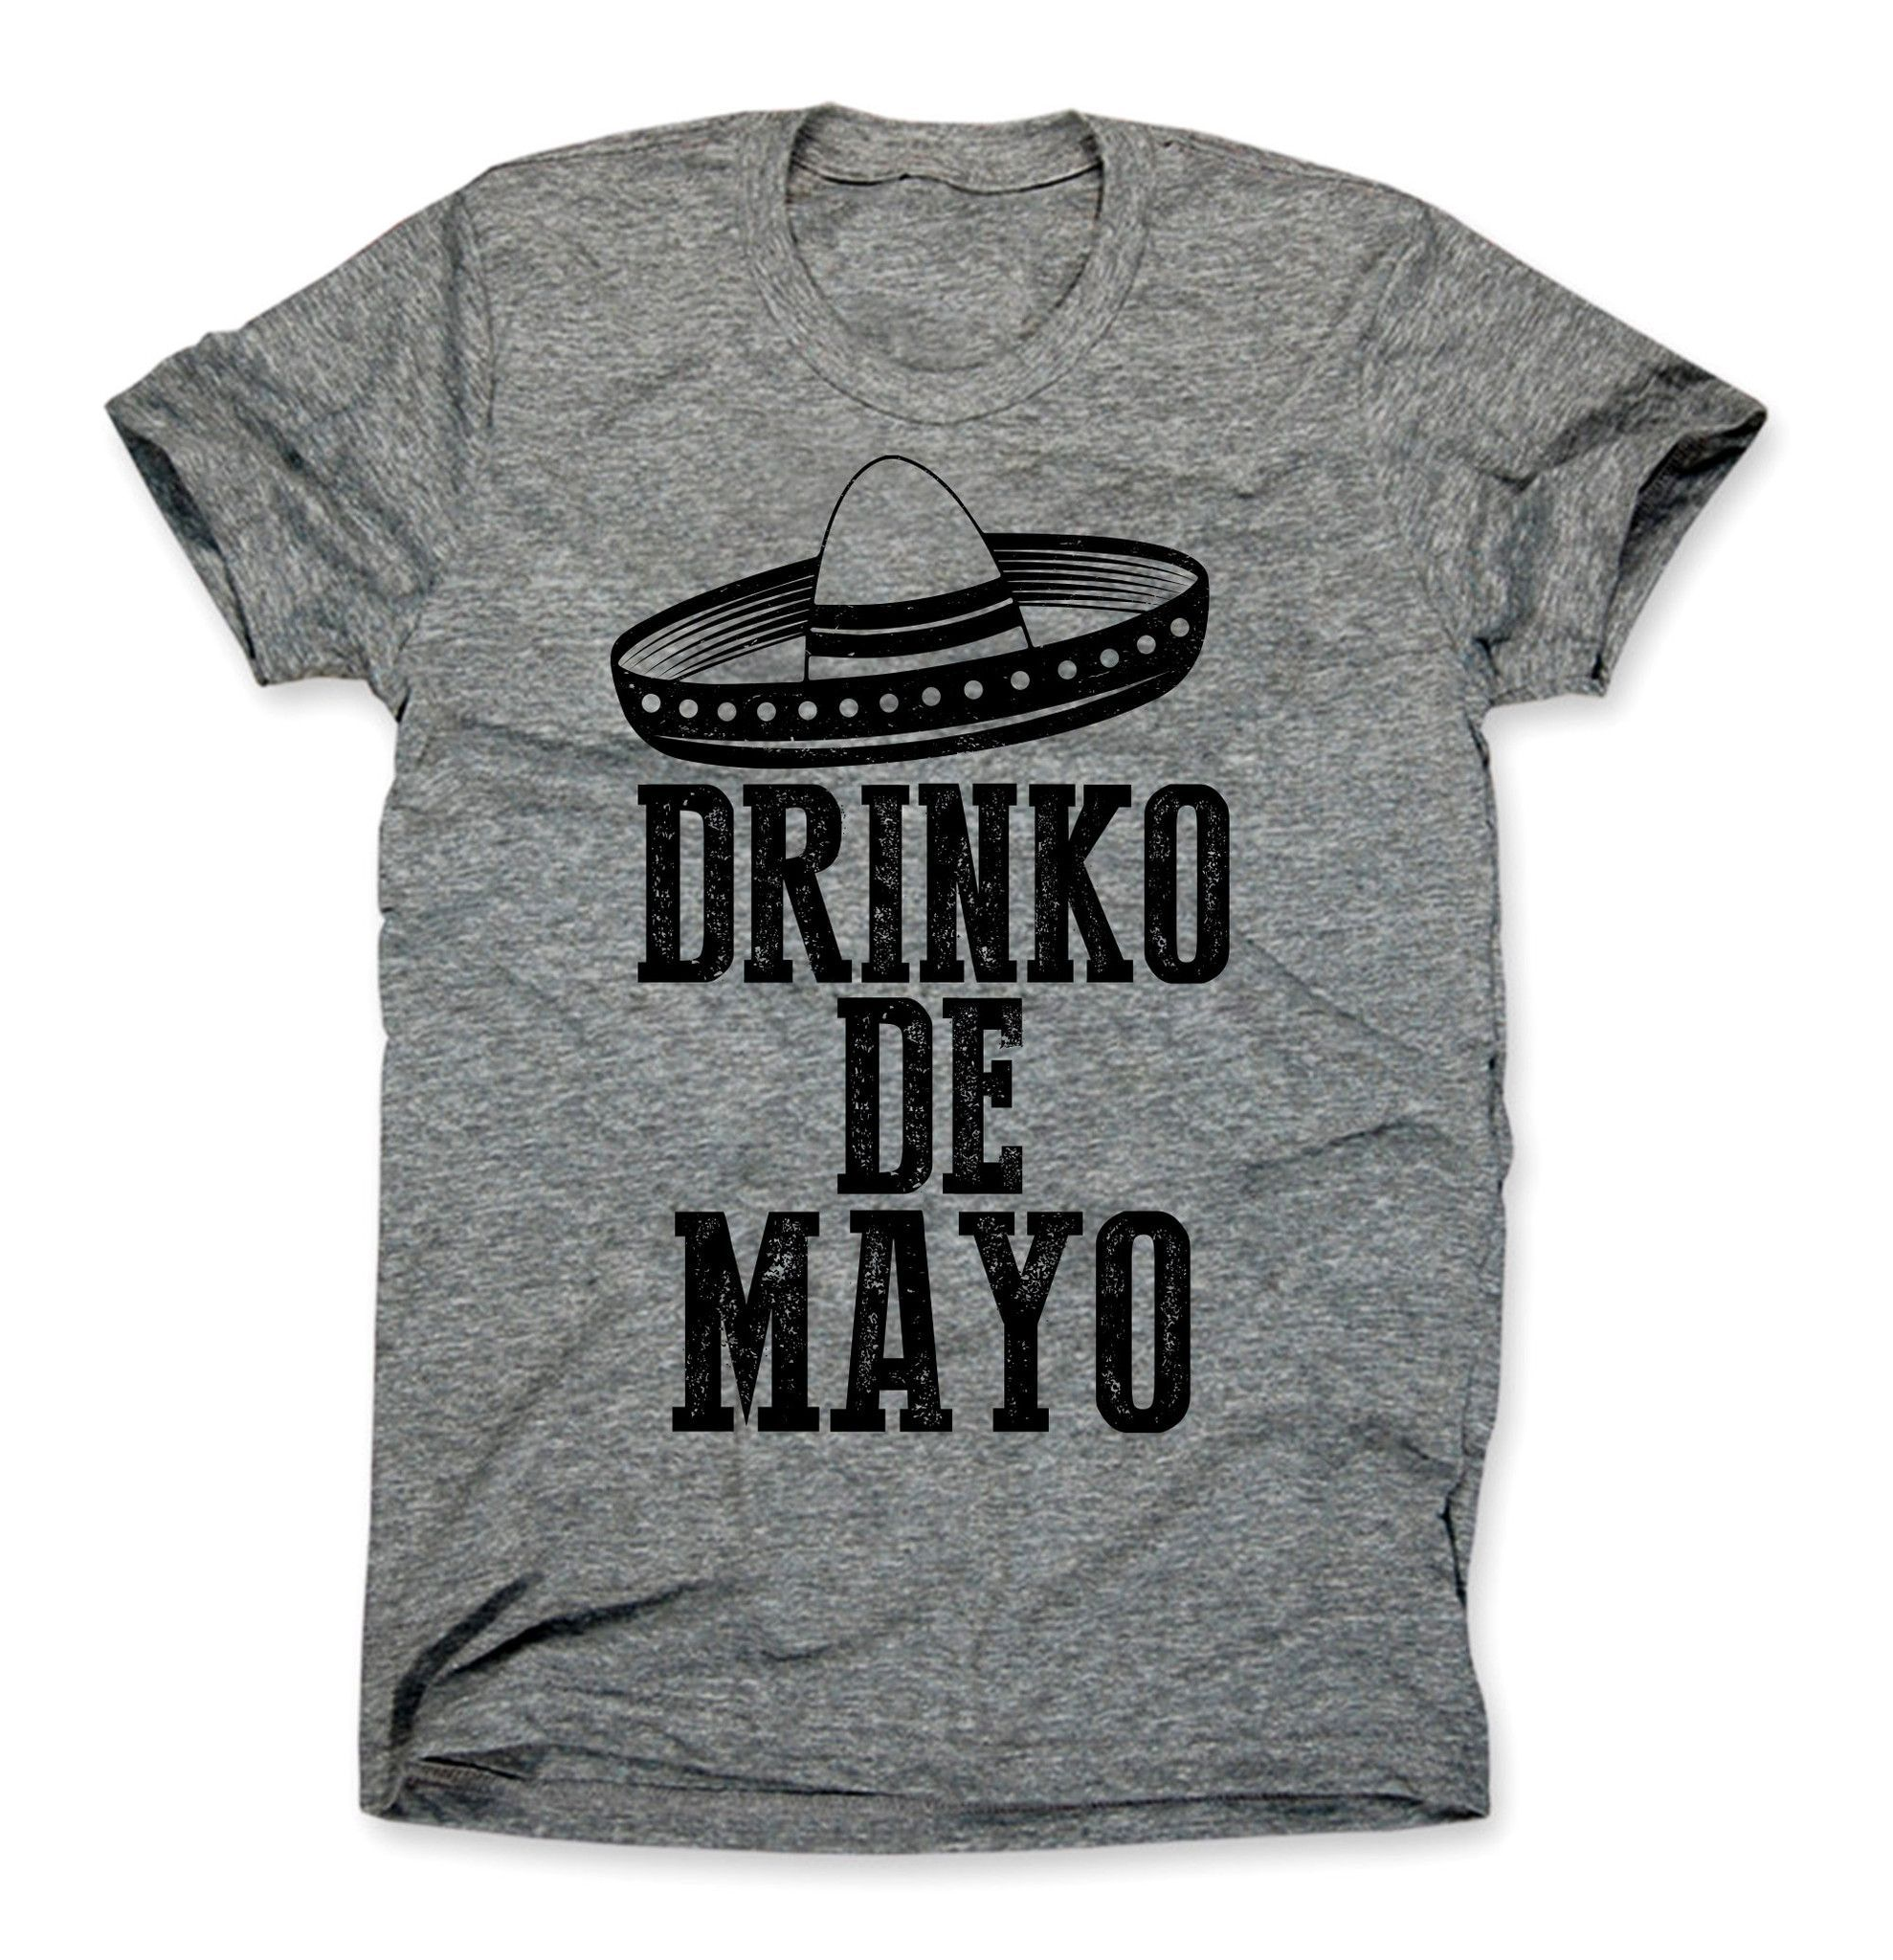 d6c2e8b5 Drinko De Mayo T-Shirt by HG Apparel At HG Apparel we think it should be Cinco  De Mayo every day! And it can be when you add the hilarious Drinko De Mayo  ...